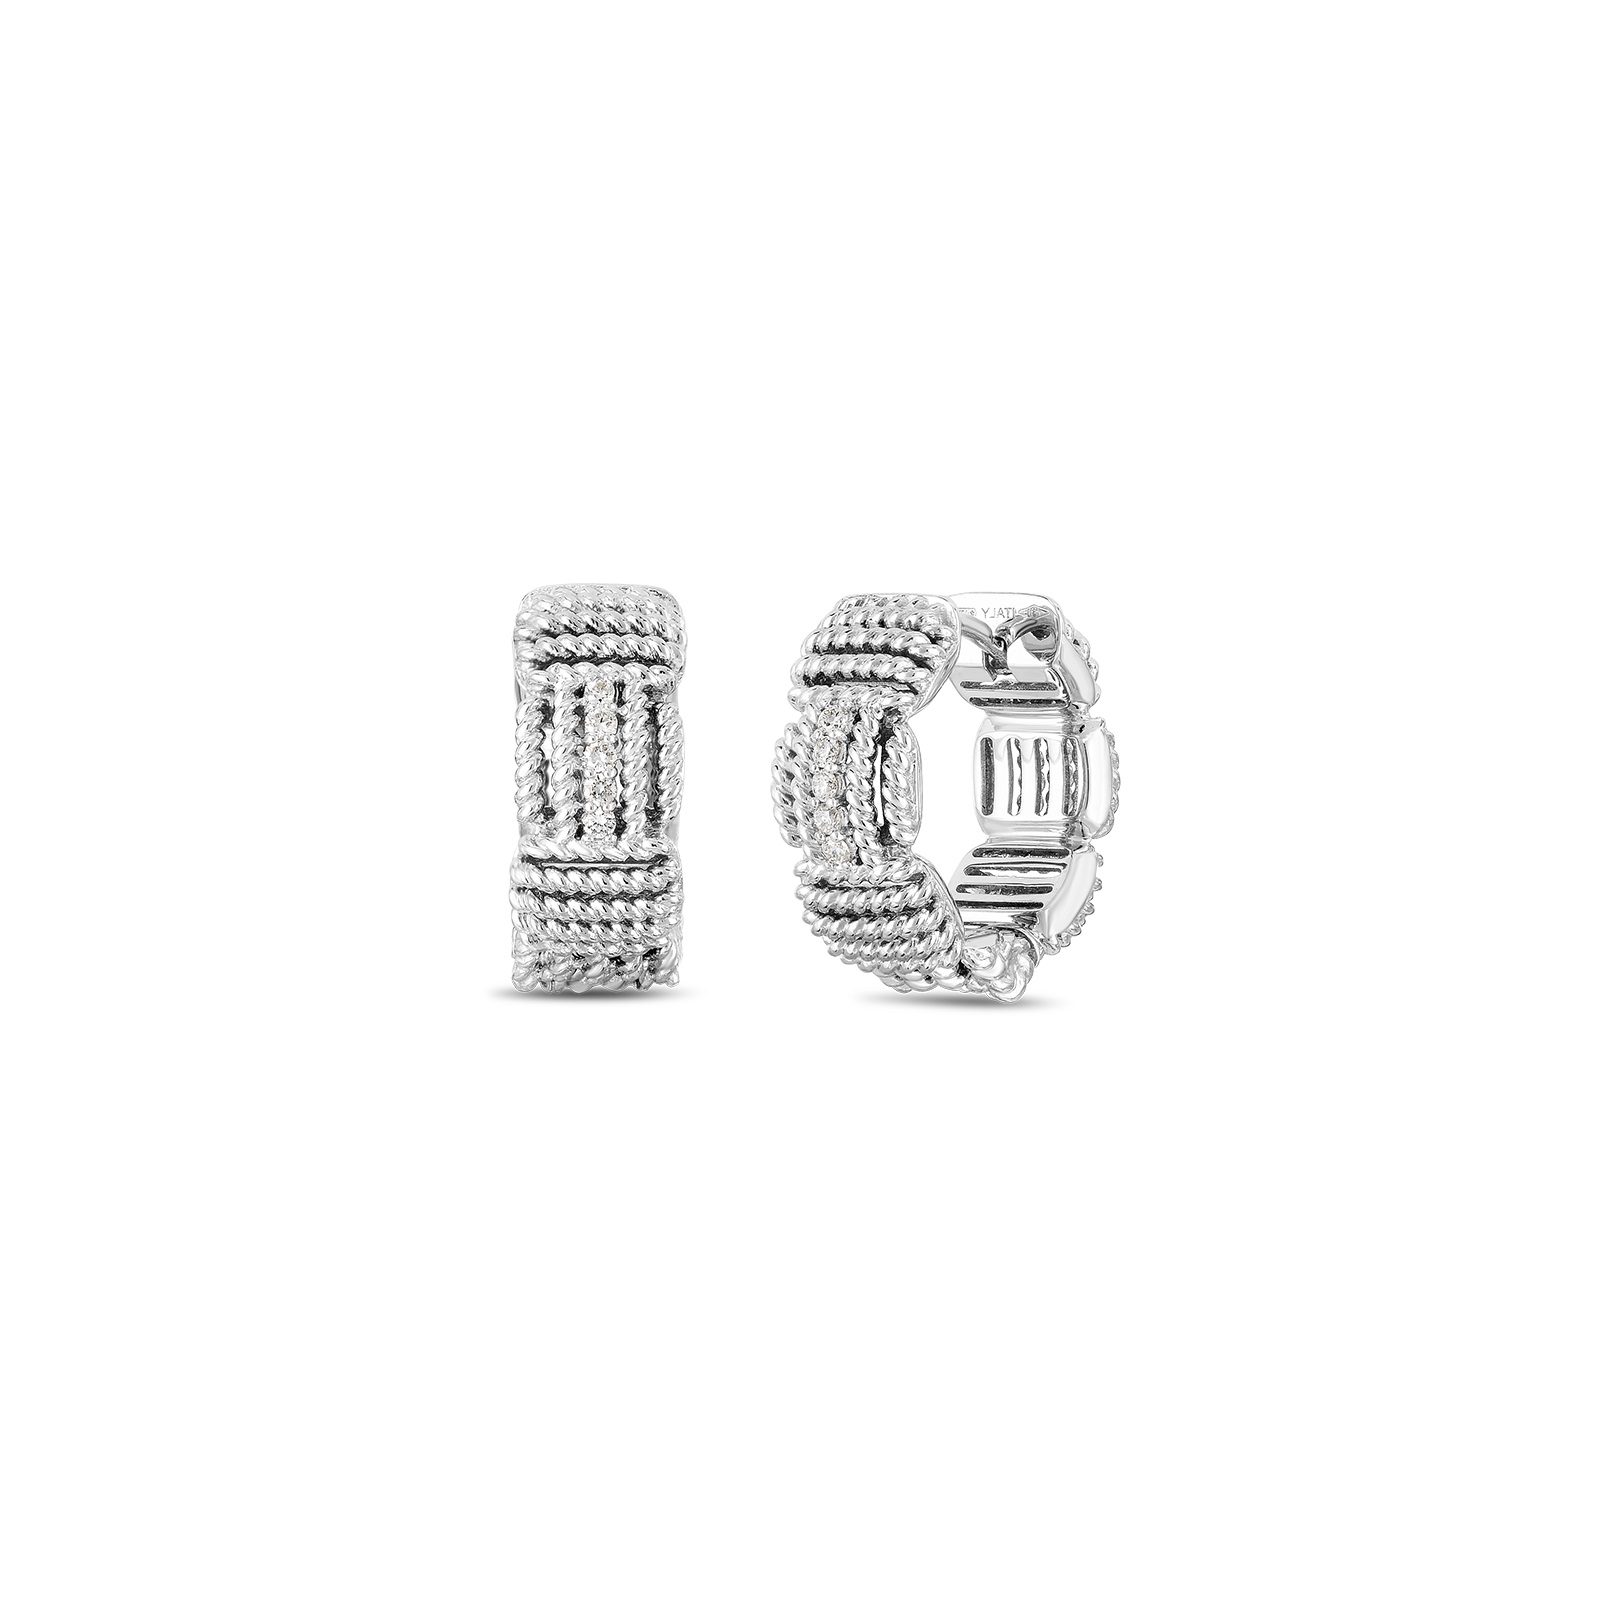 Roberto Coin 18k White Gold .07cts  Diamonds Gold Earrings with Stones 7771894AWERX